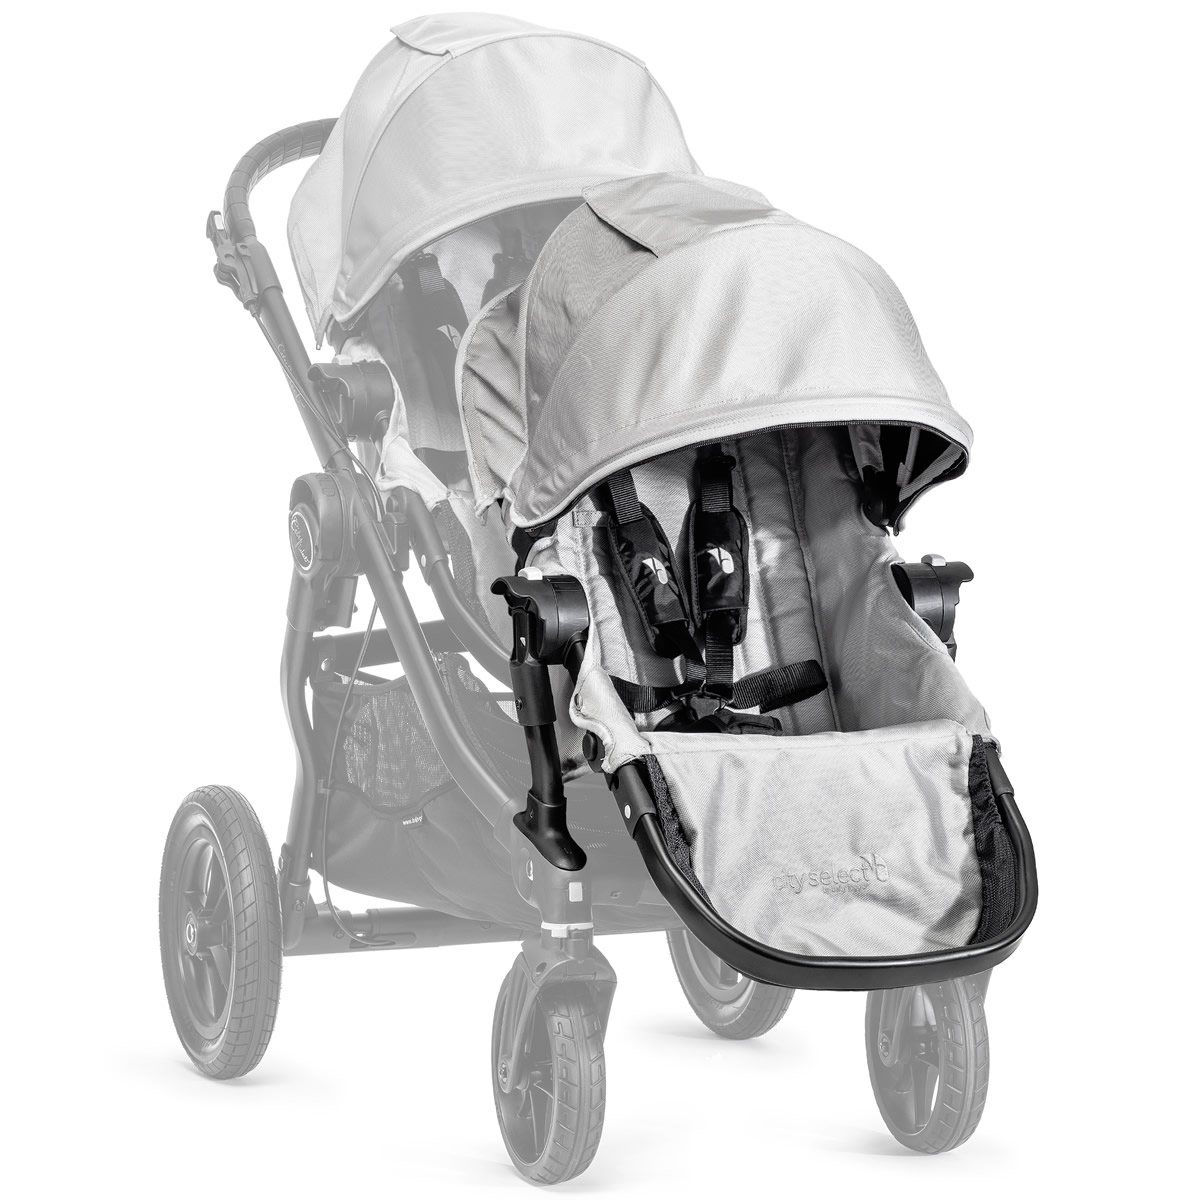 Baby Jogger City Select Second Seat Kit Silver